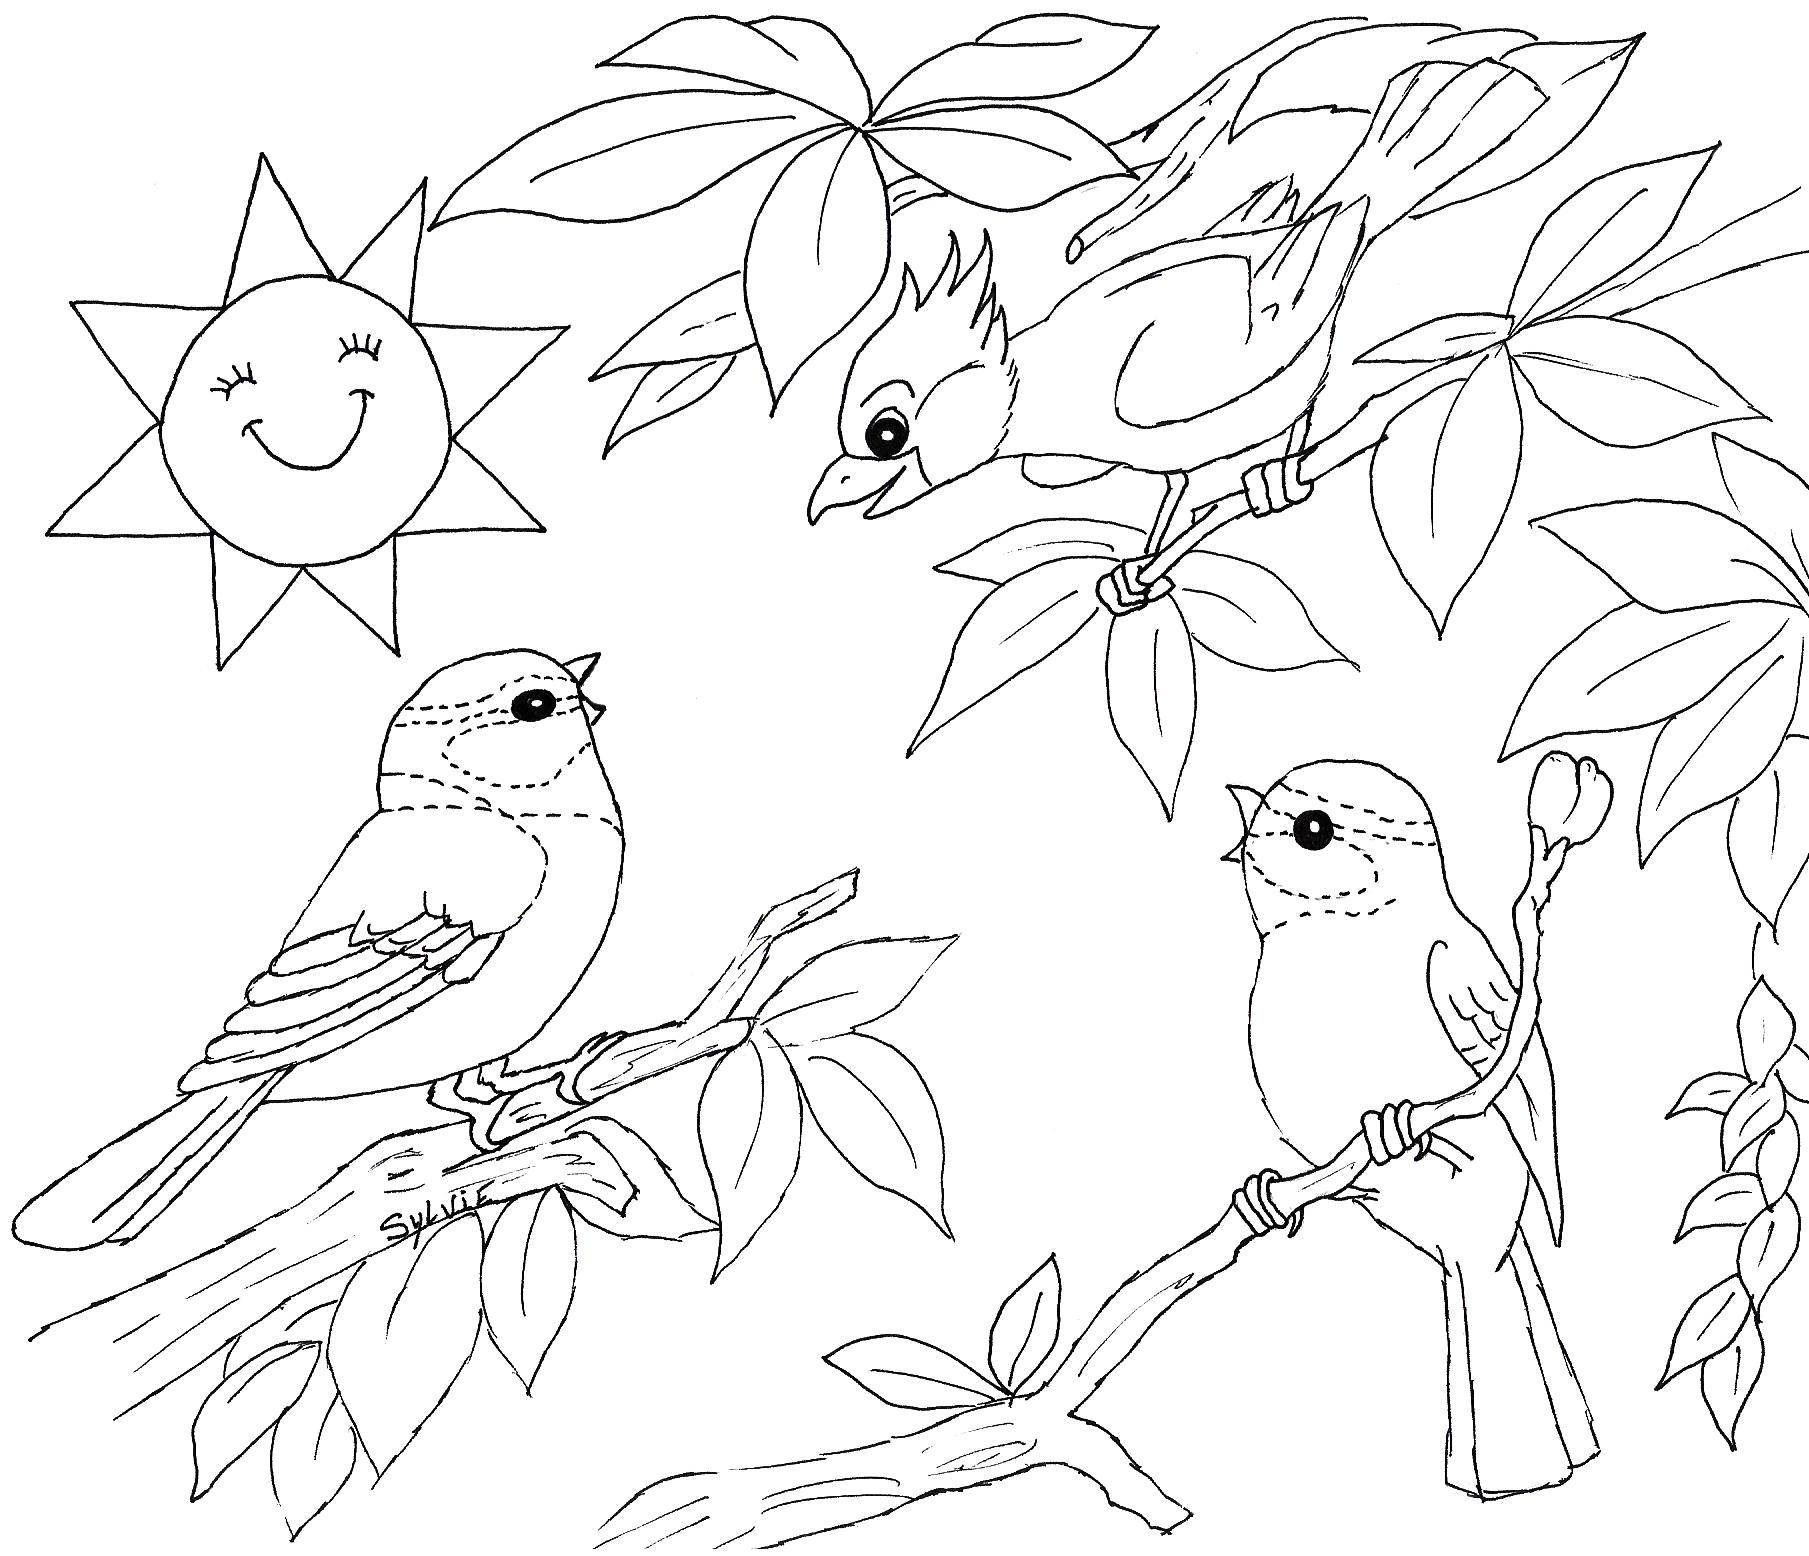 coloring pages of nature and animals smiling wetland animals coloring page of nature pages coloring and animals